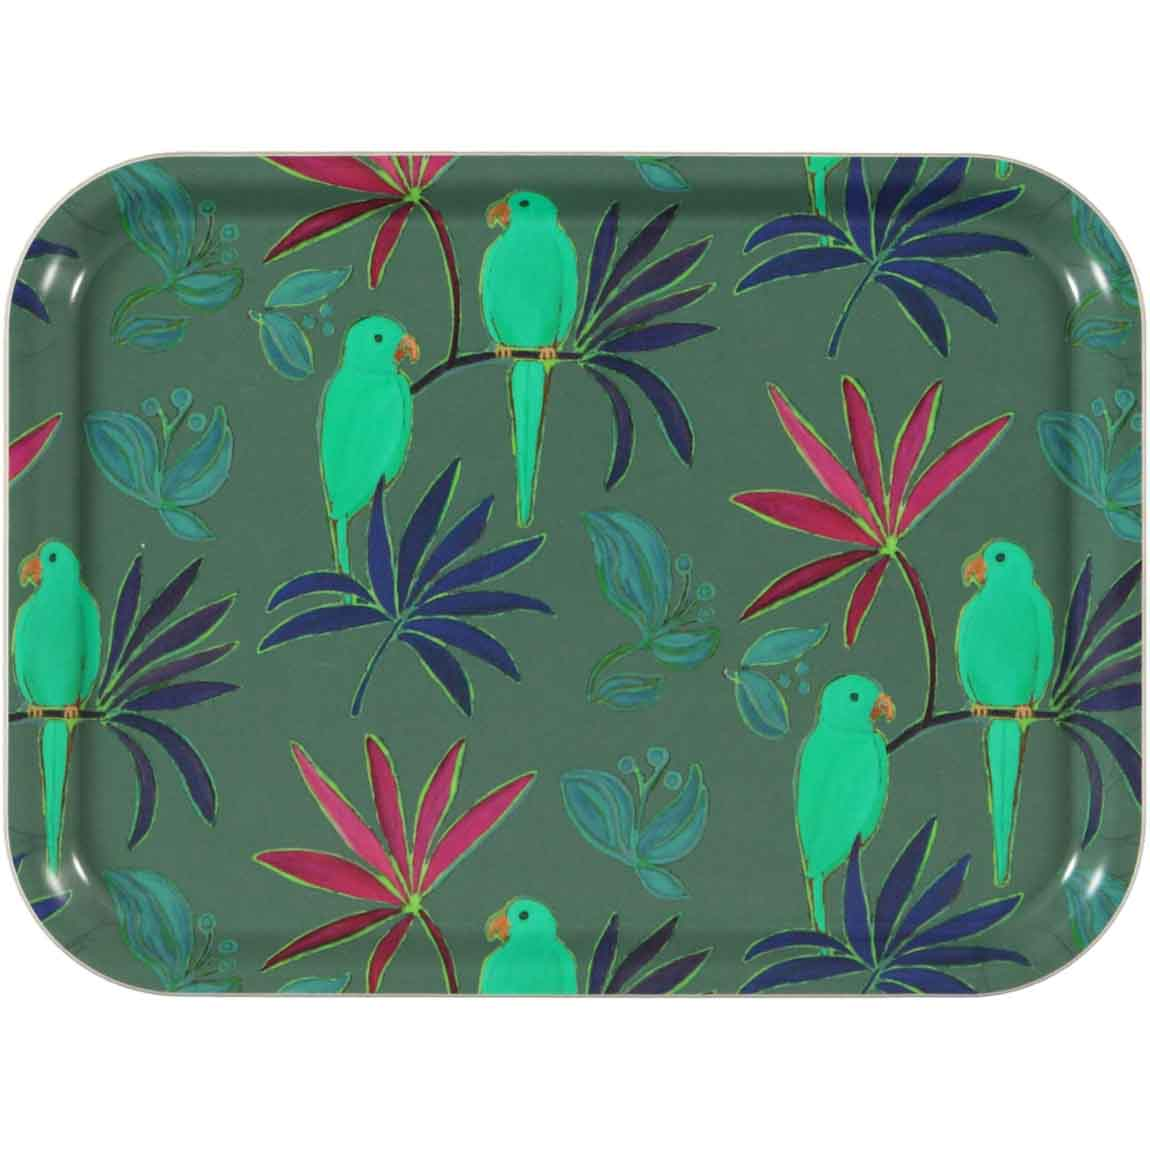 singapore green Tray - 27 x 20